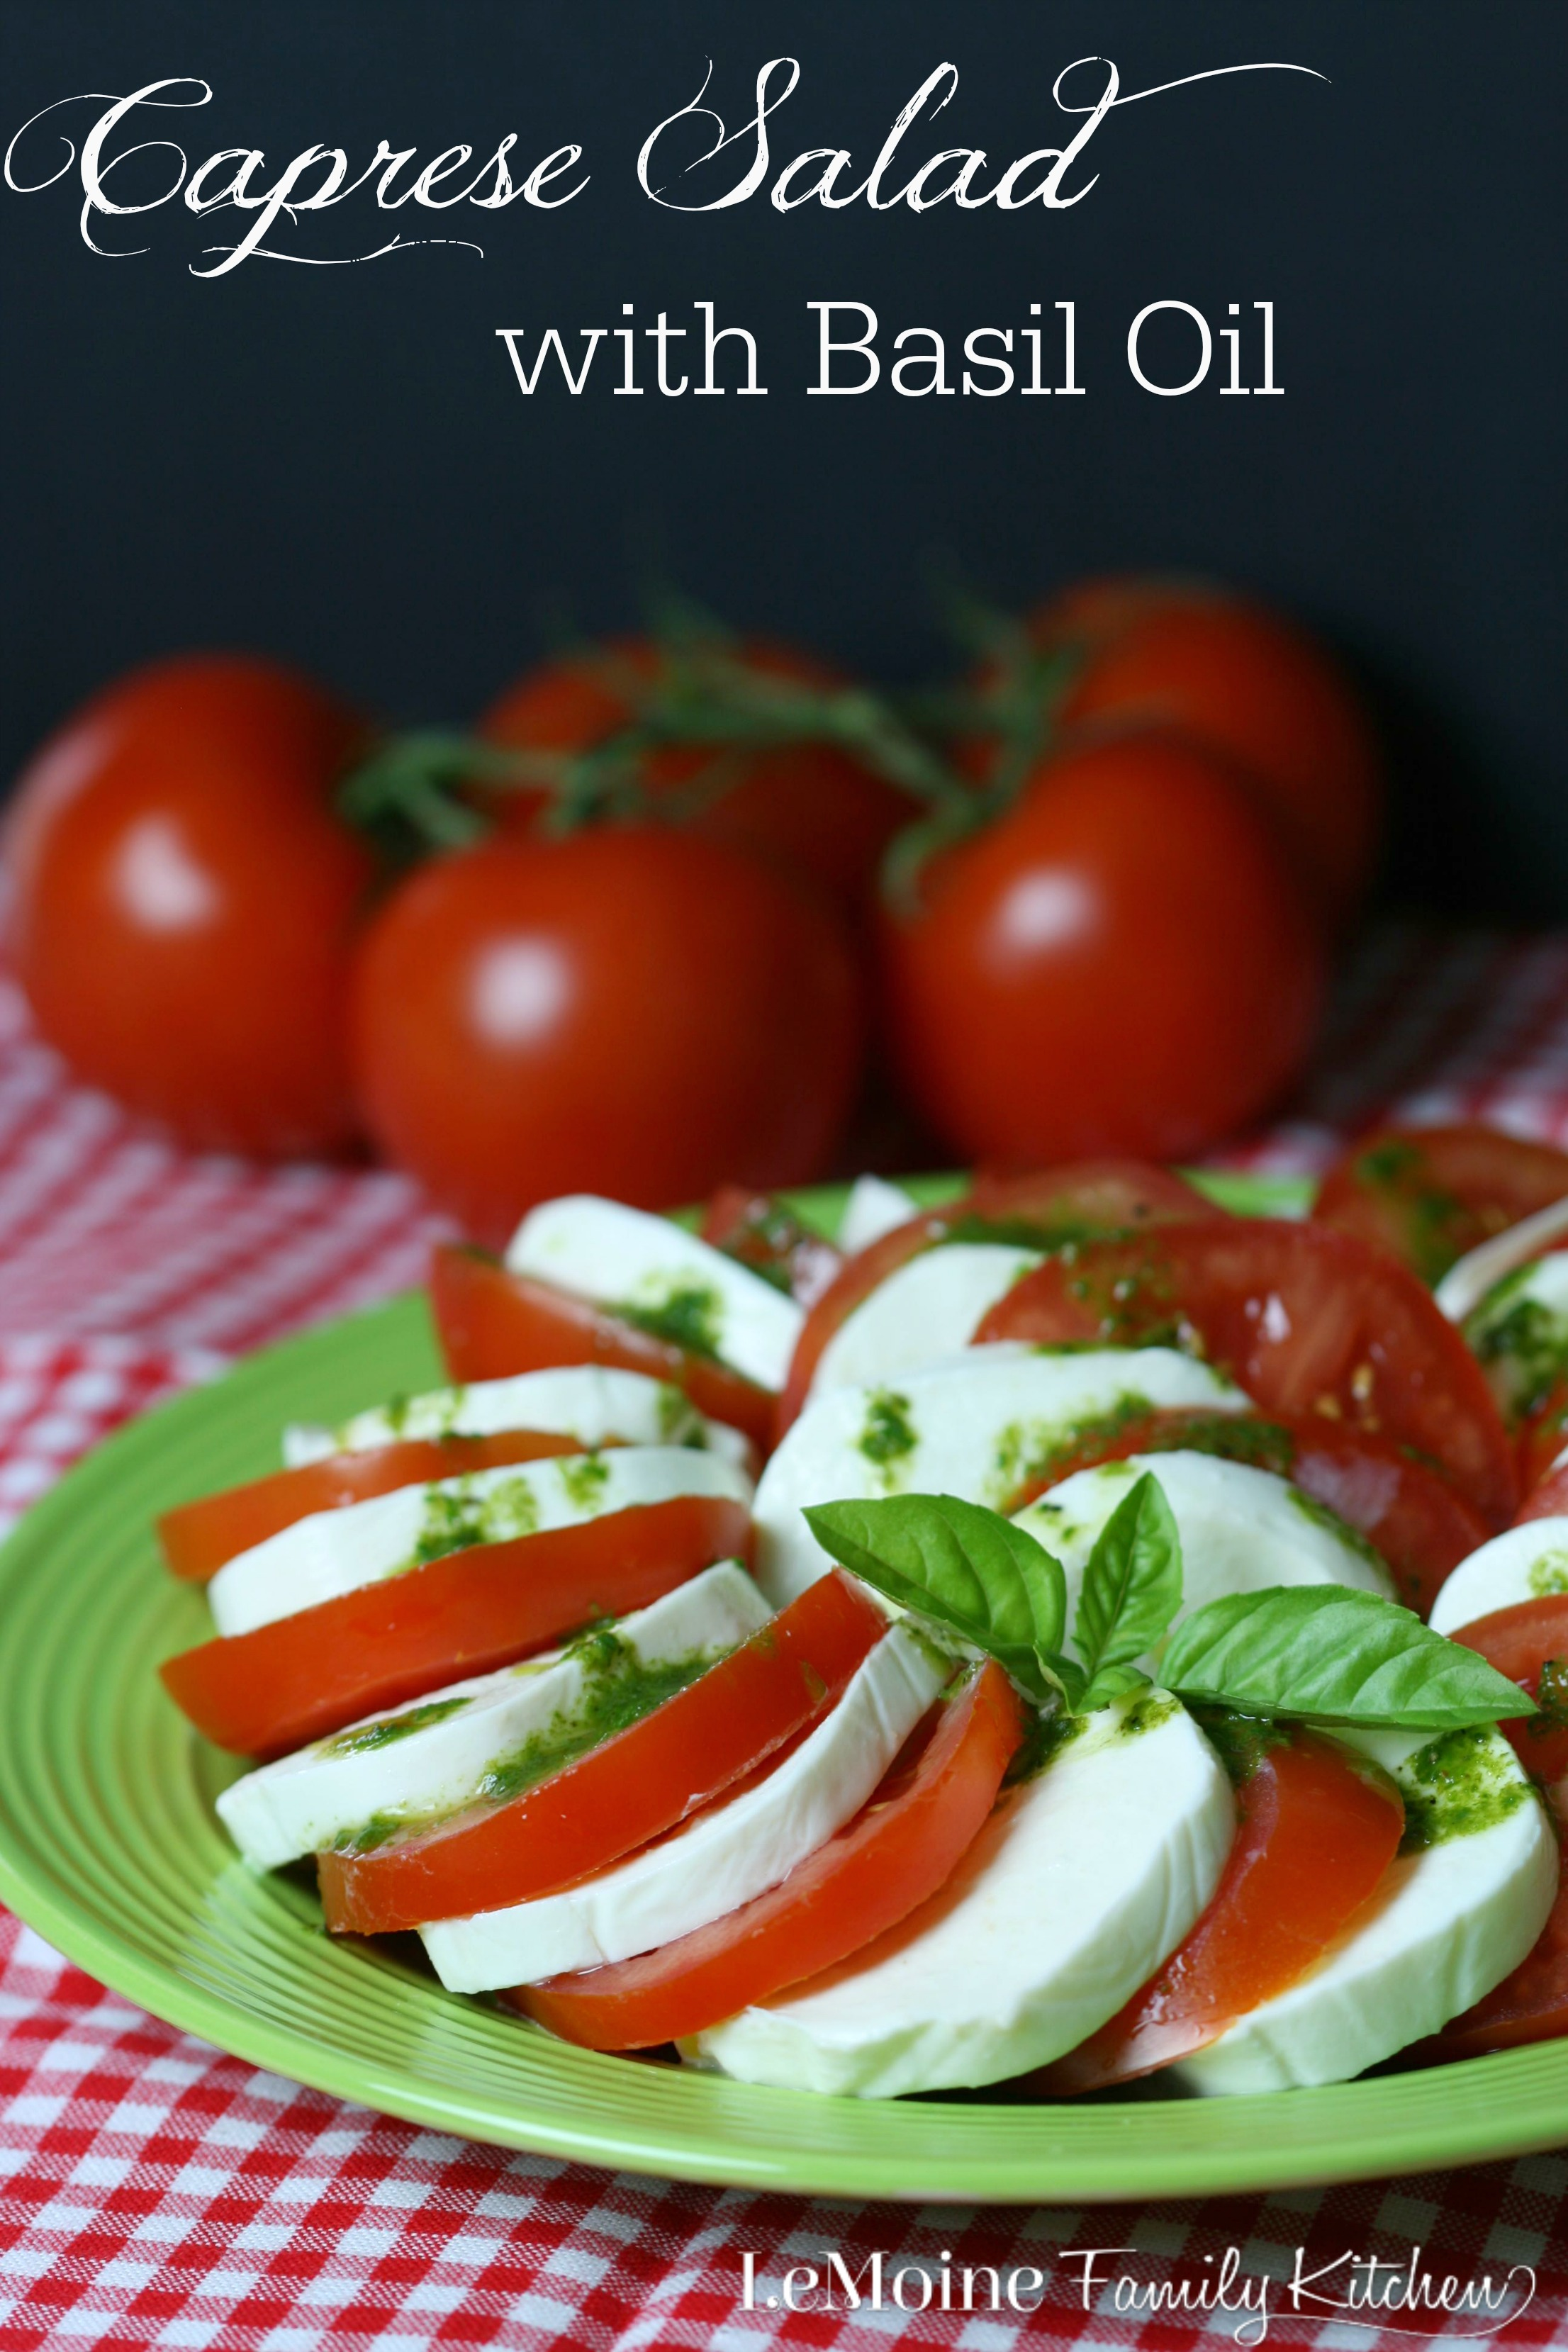 Caprese Salad with Basil Oil